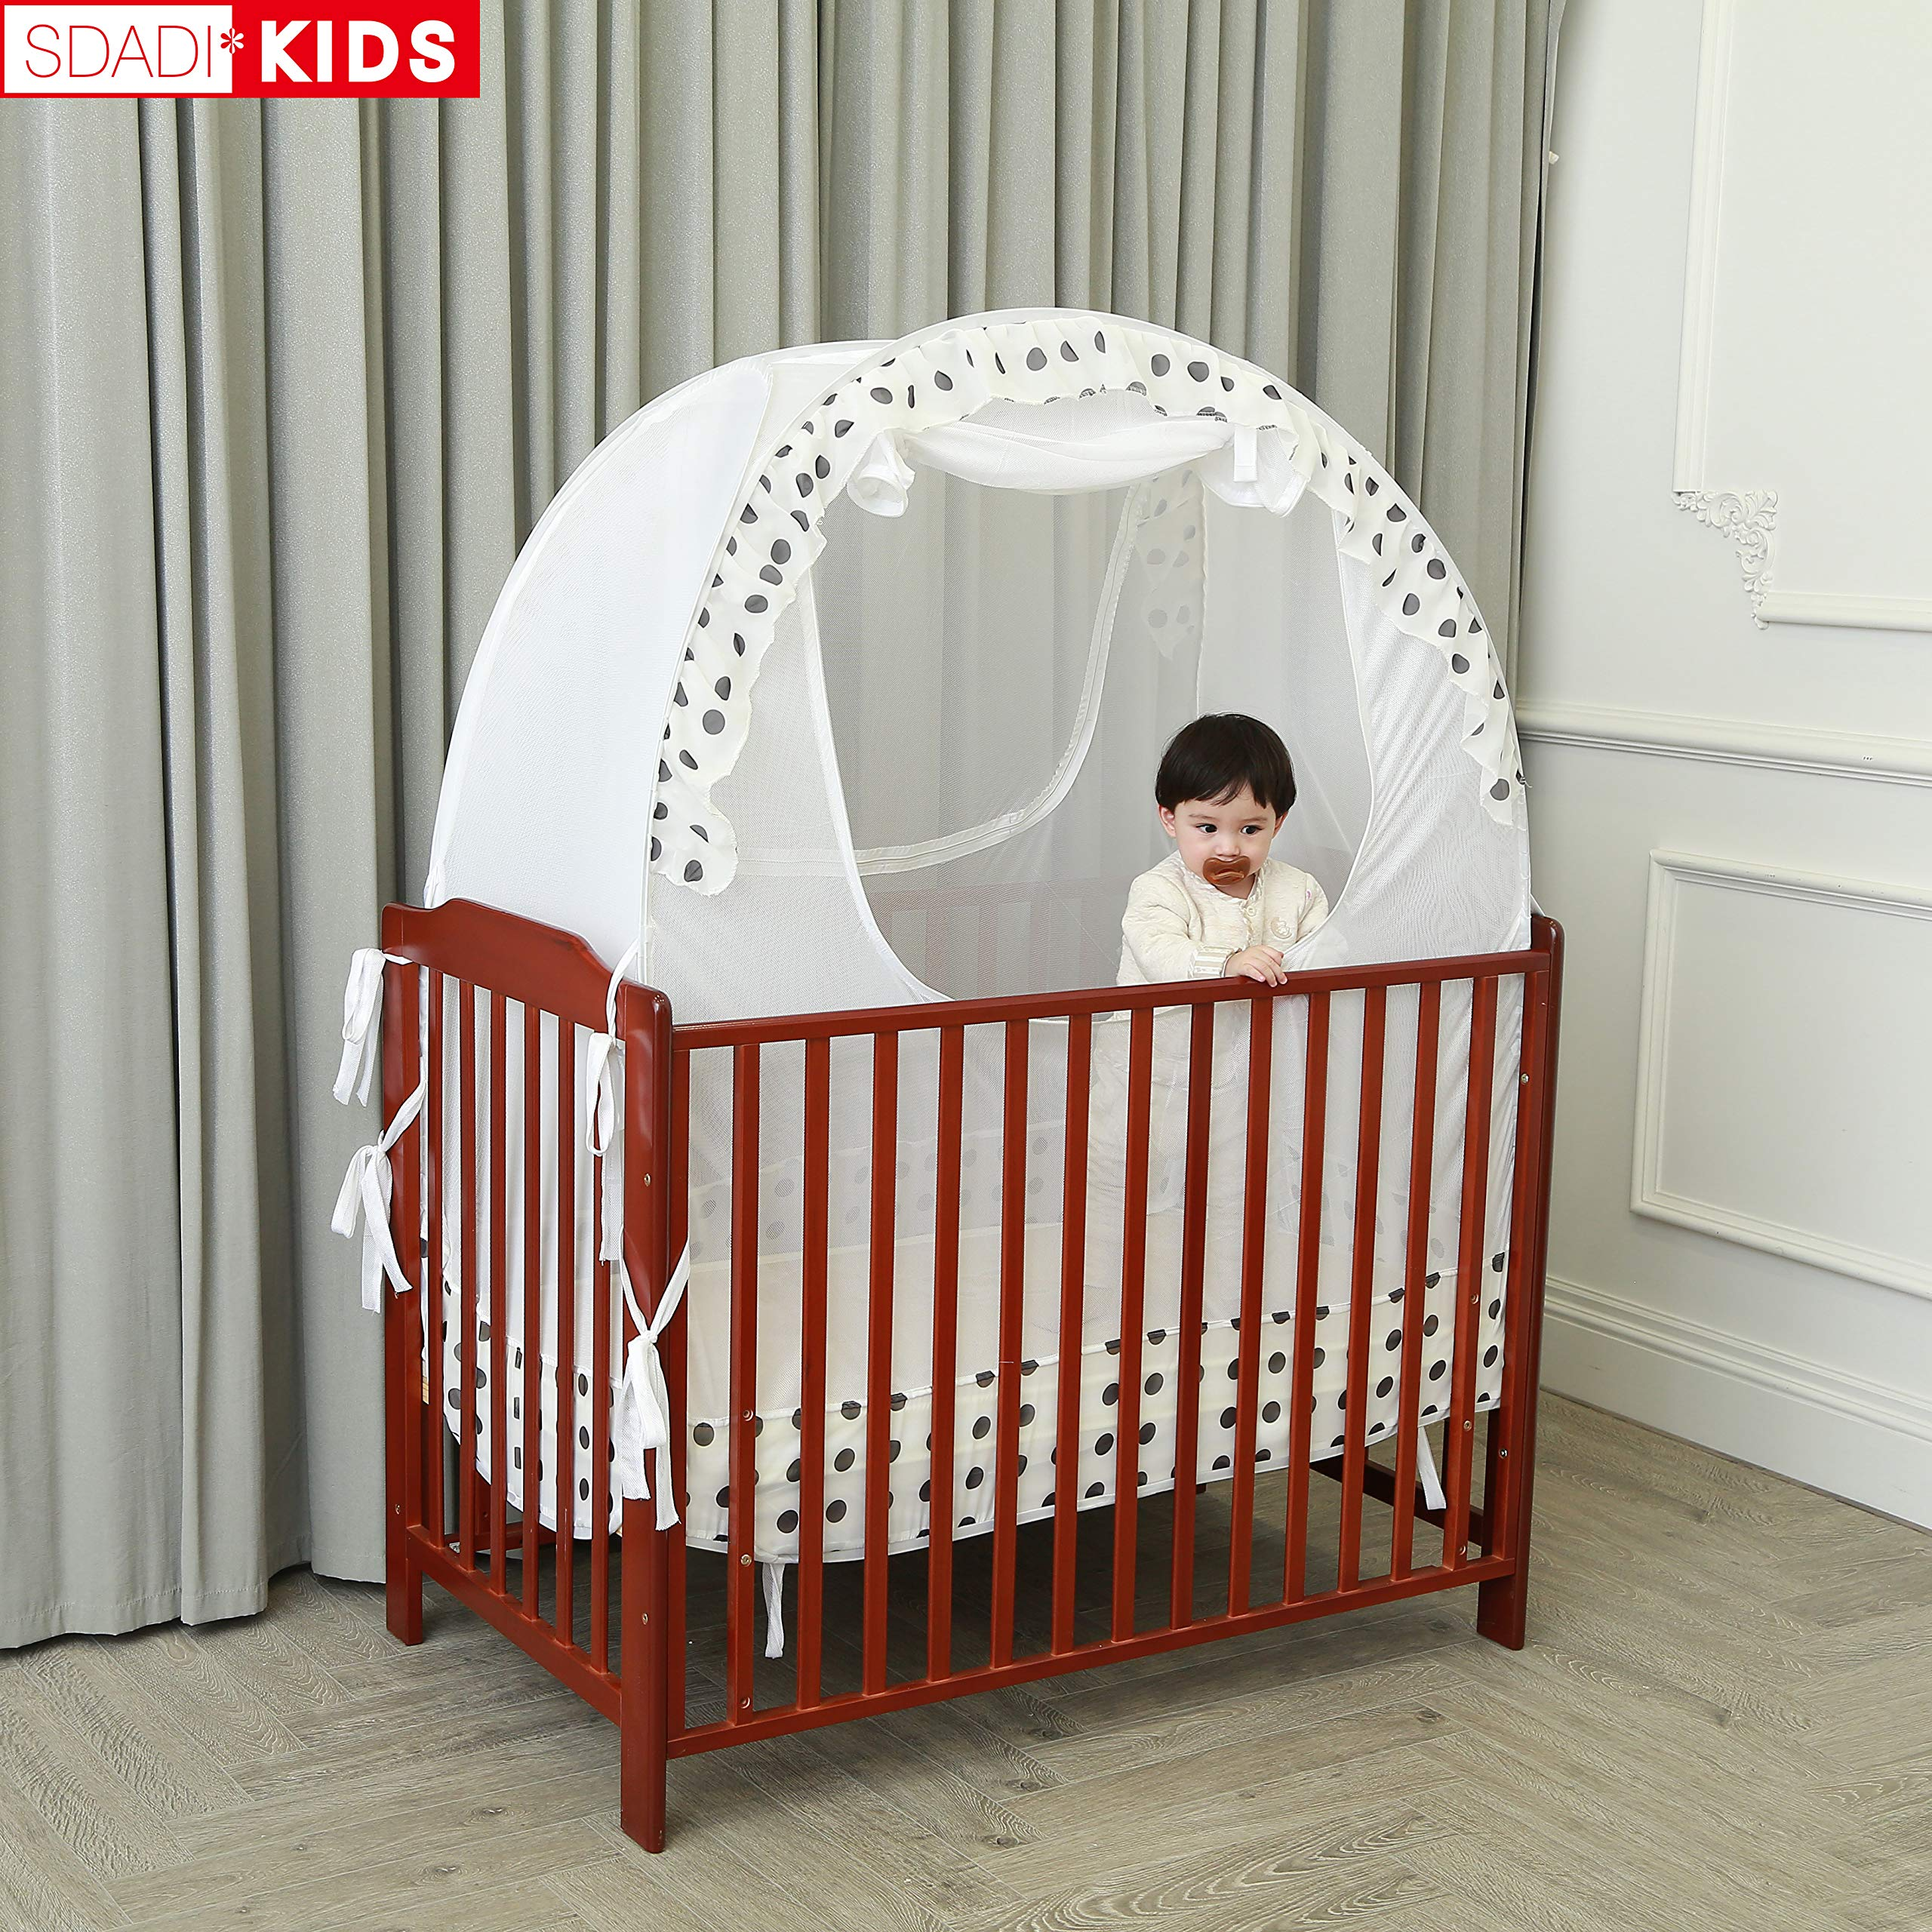 SDADI Baby Crib Safety Tent Pop Up Mosquito Net with Baby Monitor Hang Ribbon,Toddler Bed Canopy Netting Cover |Dots WLCN01D by SDADI (Image #7)